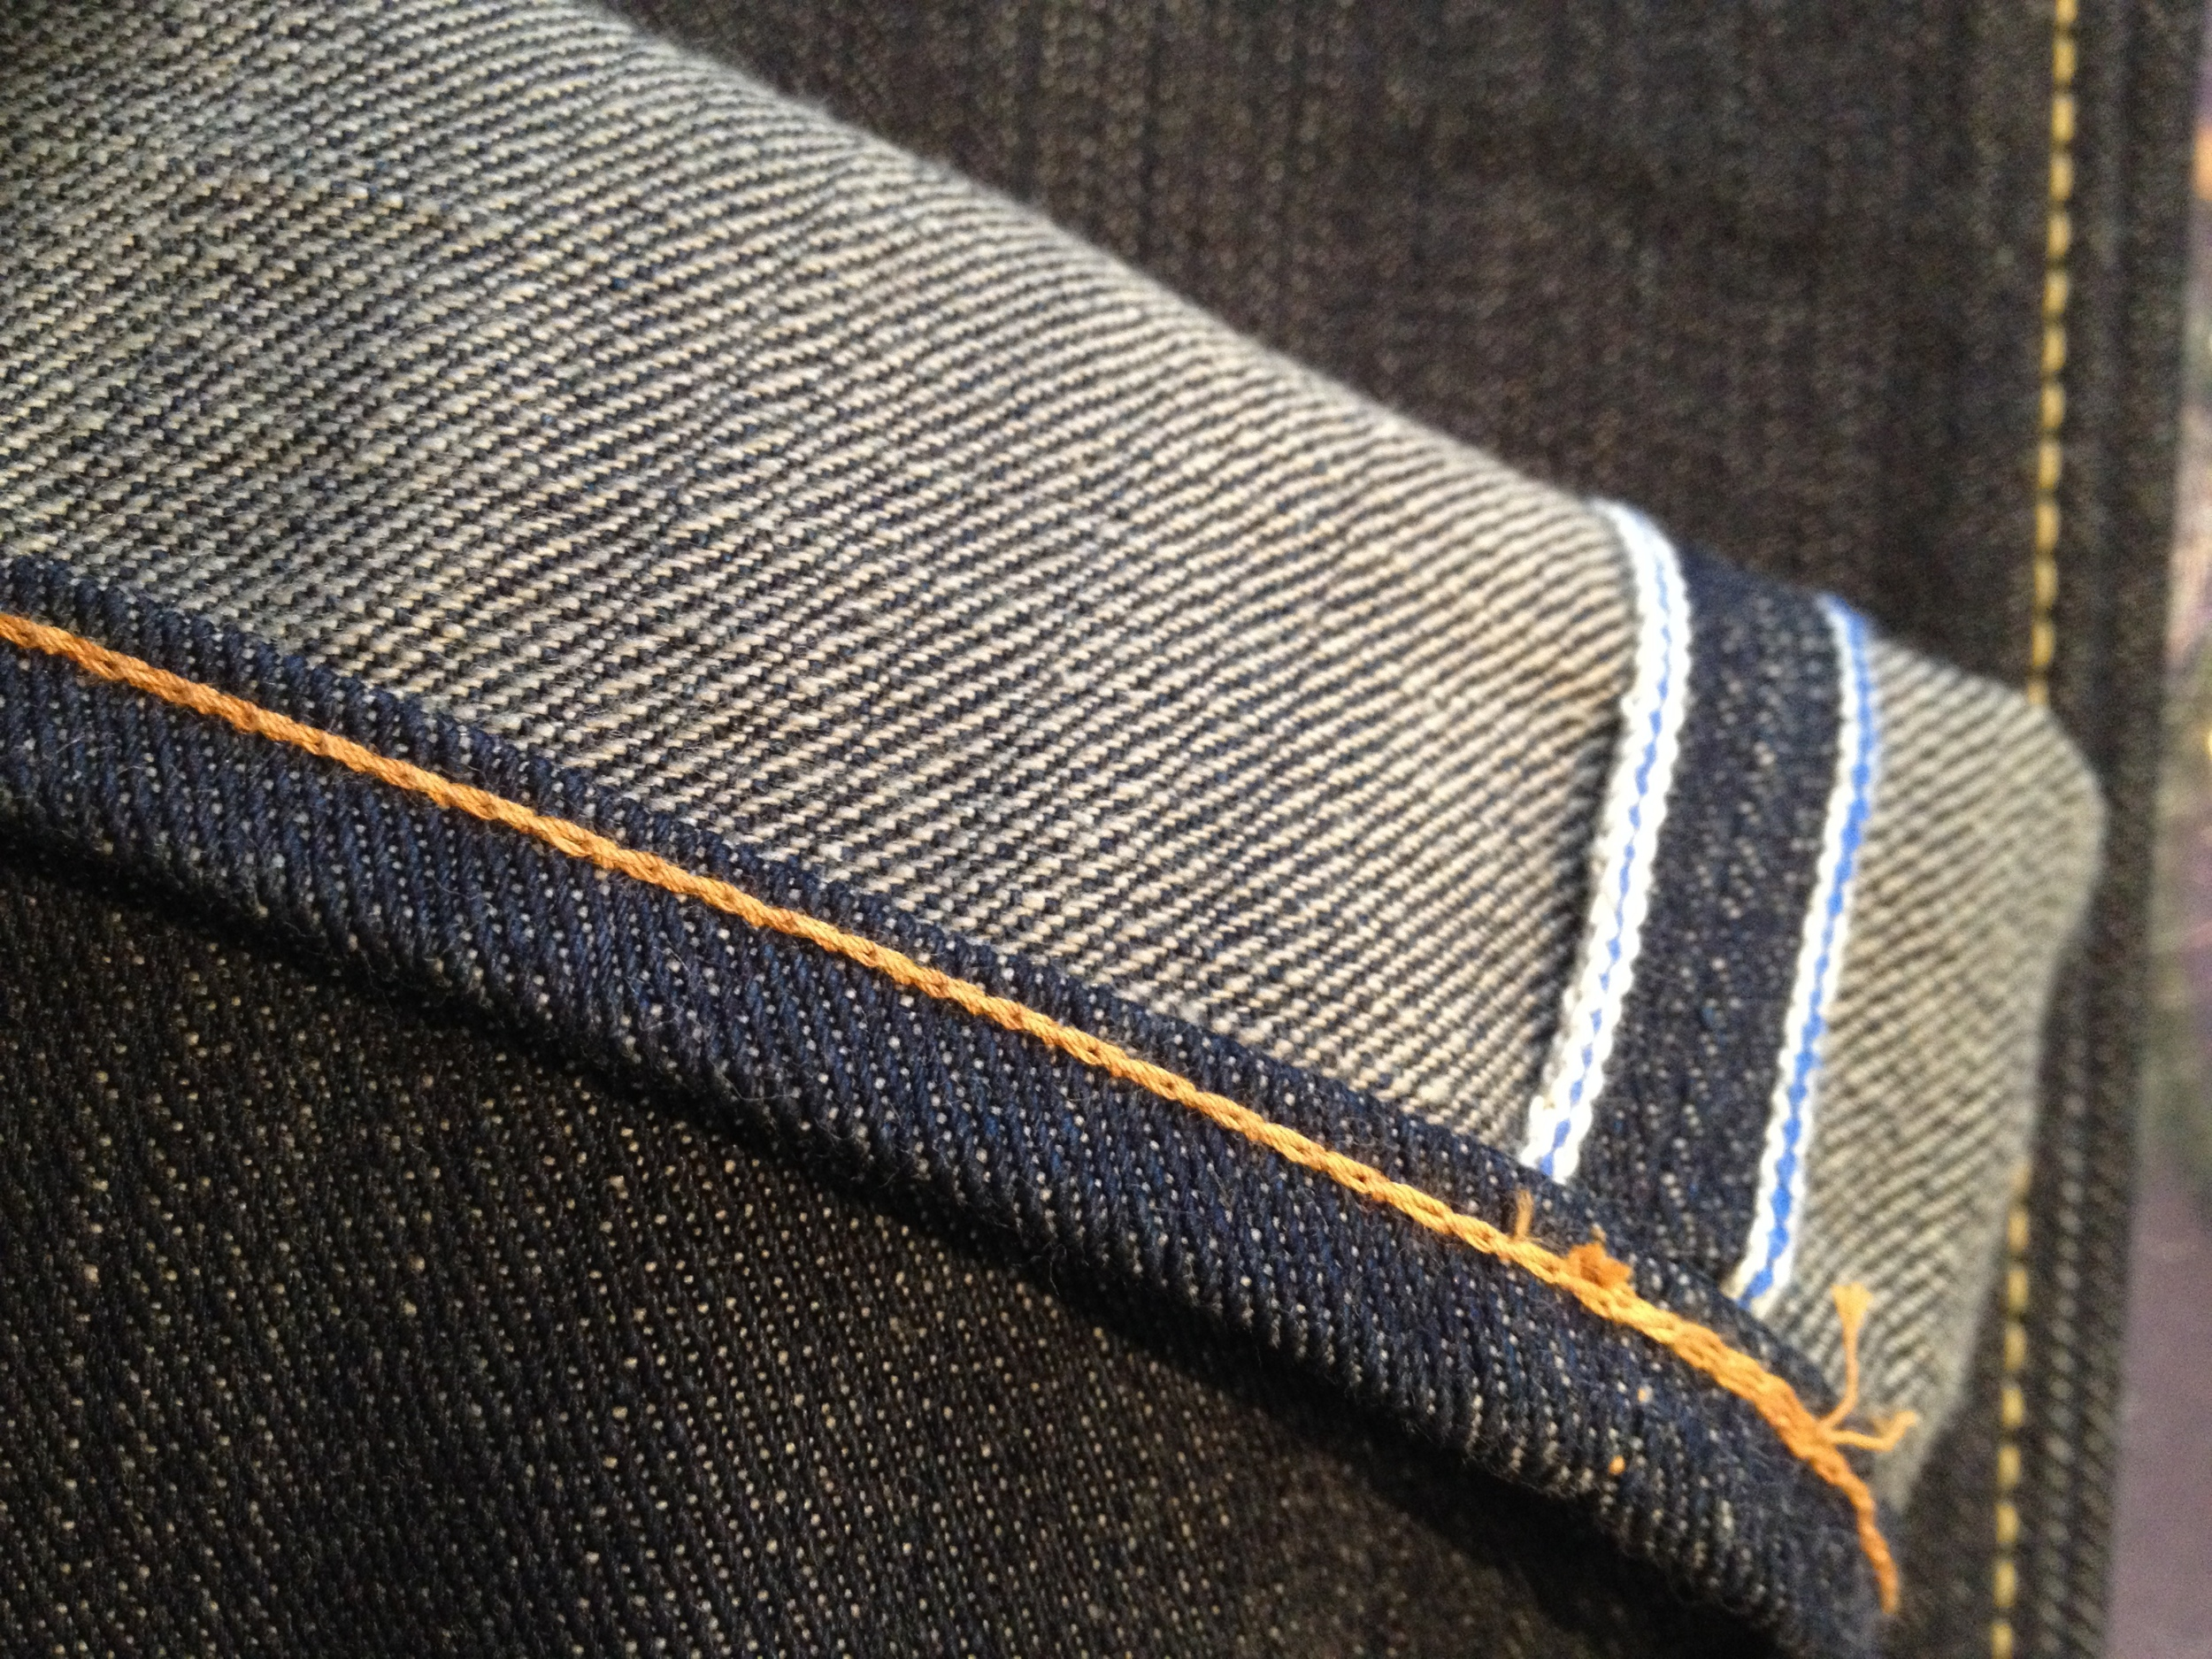 Selvage stitching on jeans—indication that the denim was made on a single loom.